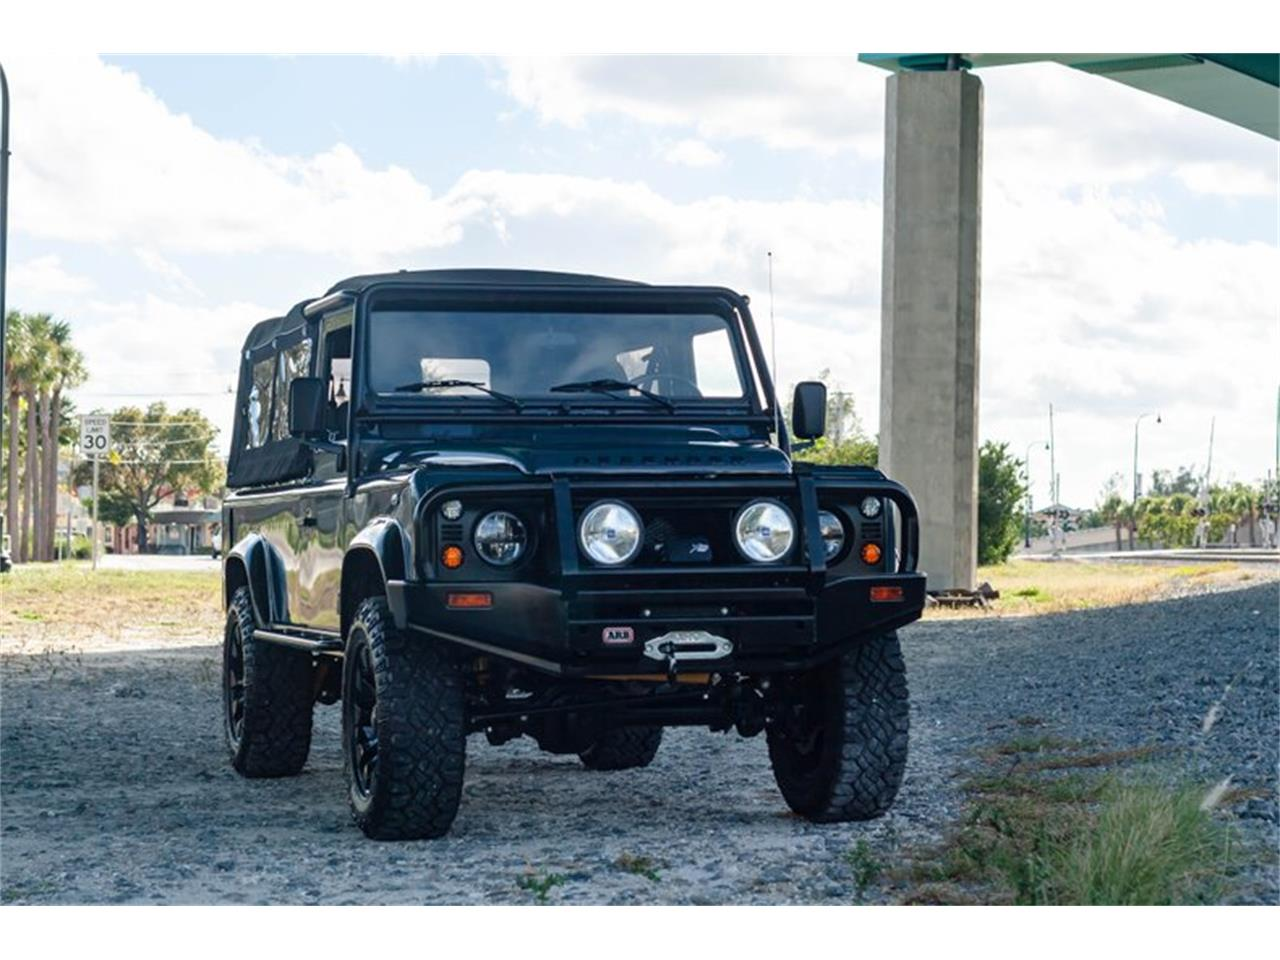 1997 Land Rover Defender for sale in Delray Beach, FL – photo 2